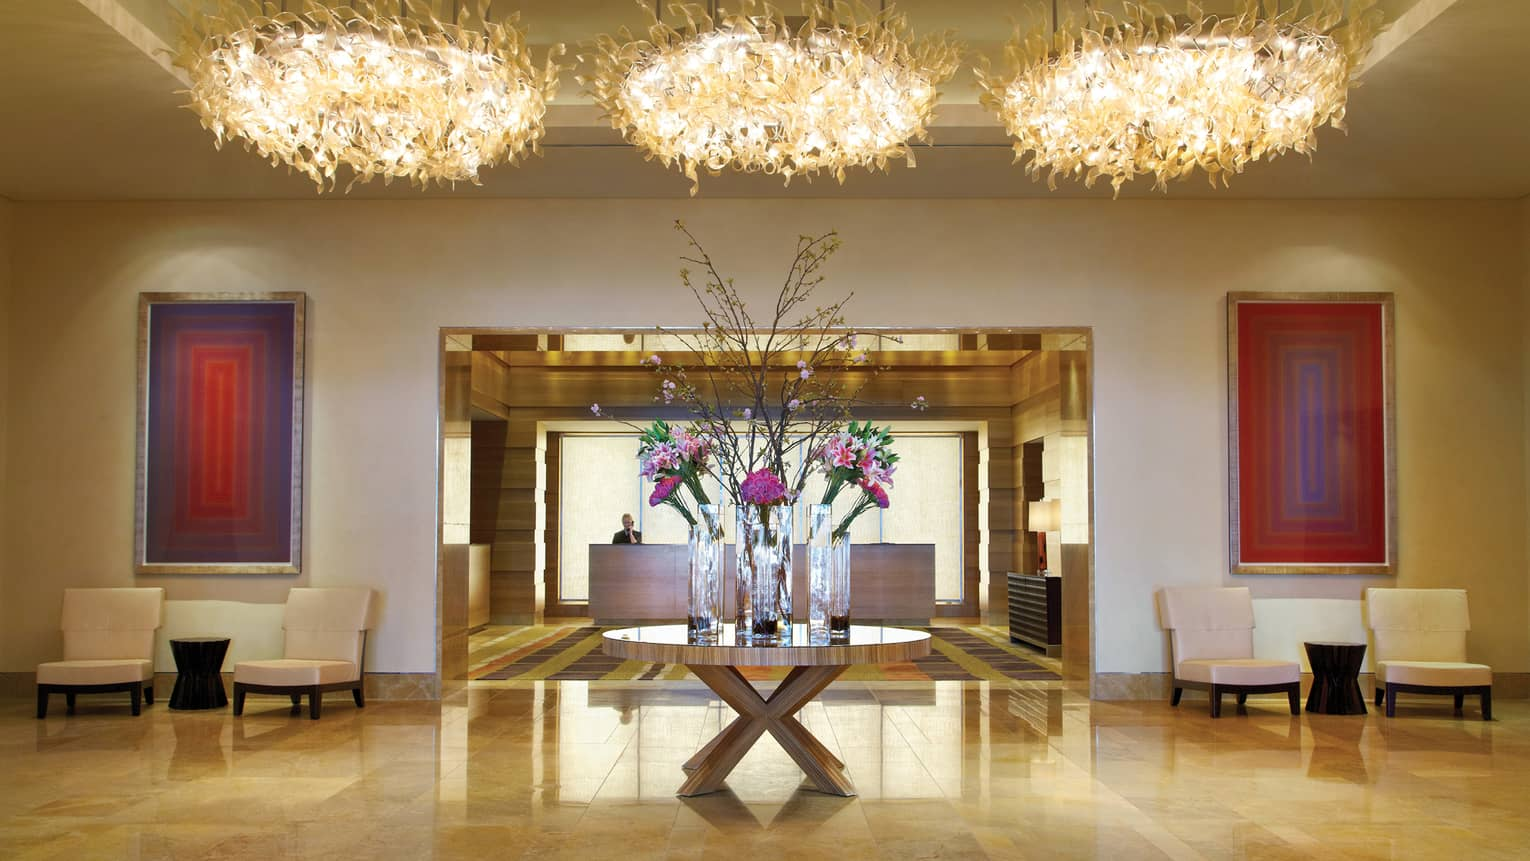 Three modern chandeliers hang above round table with vases, flowers in hotel lobby